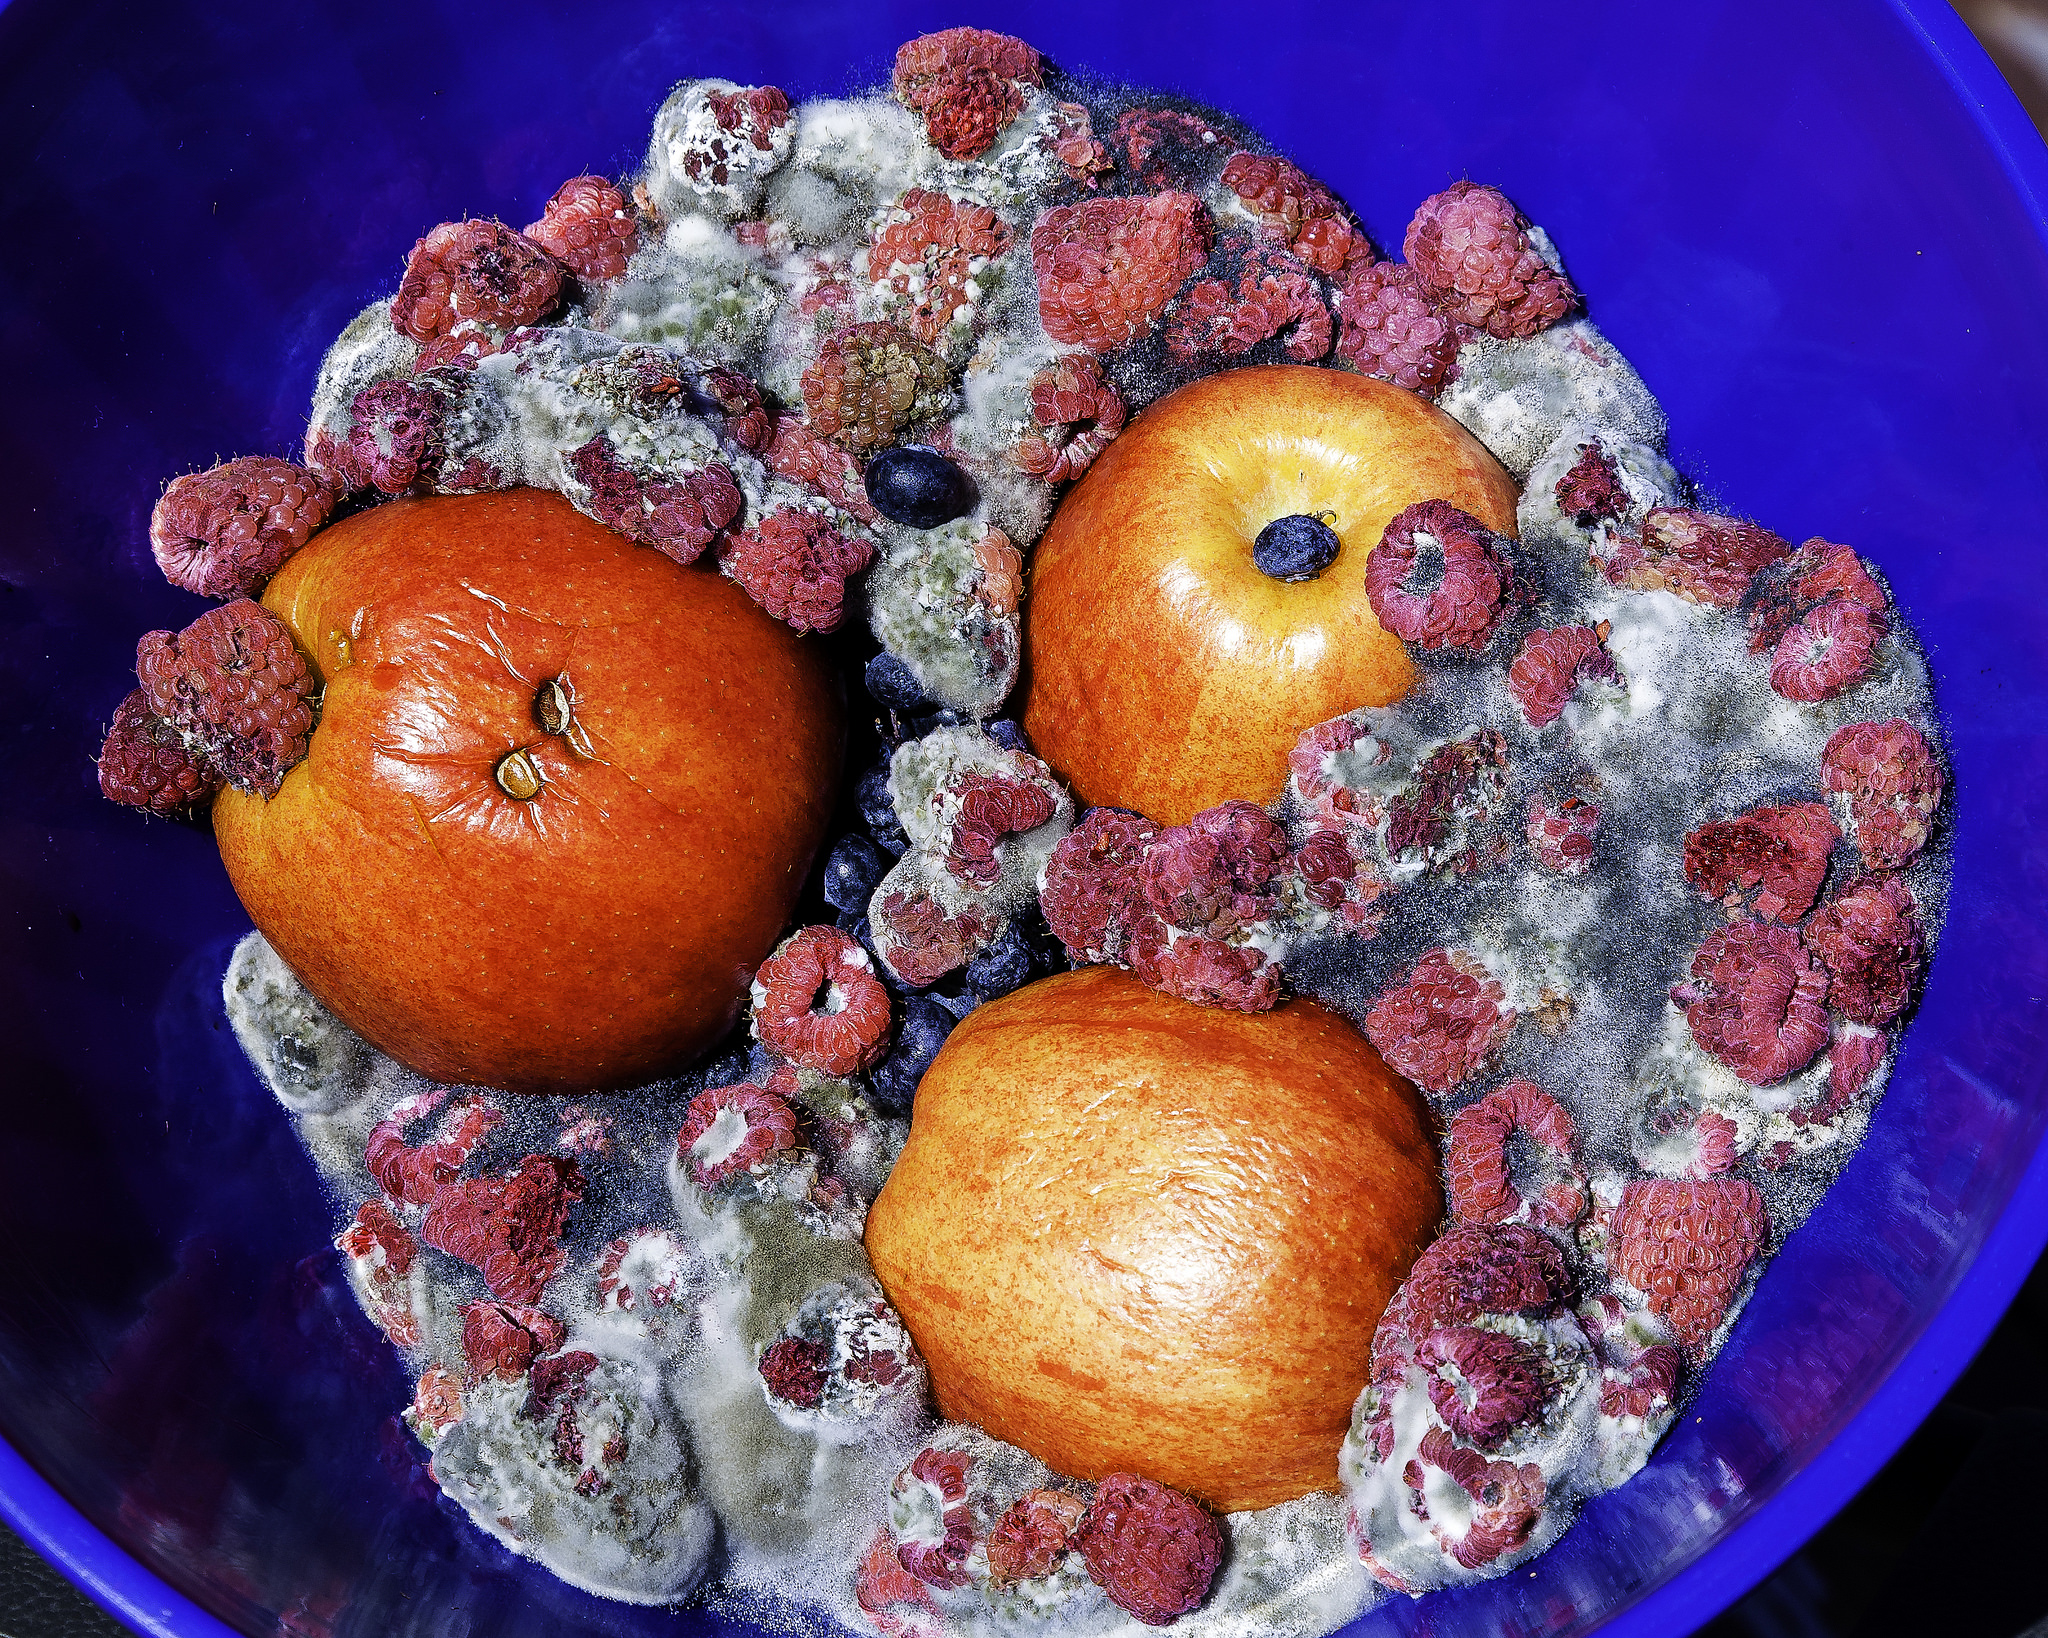 Food Waste. Fruit rotting in the bowl.